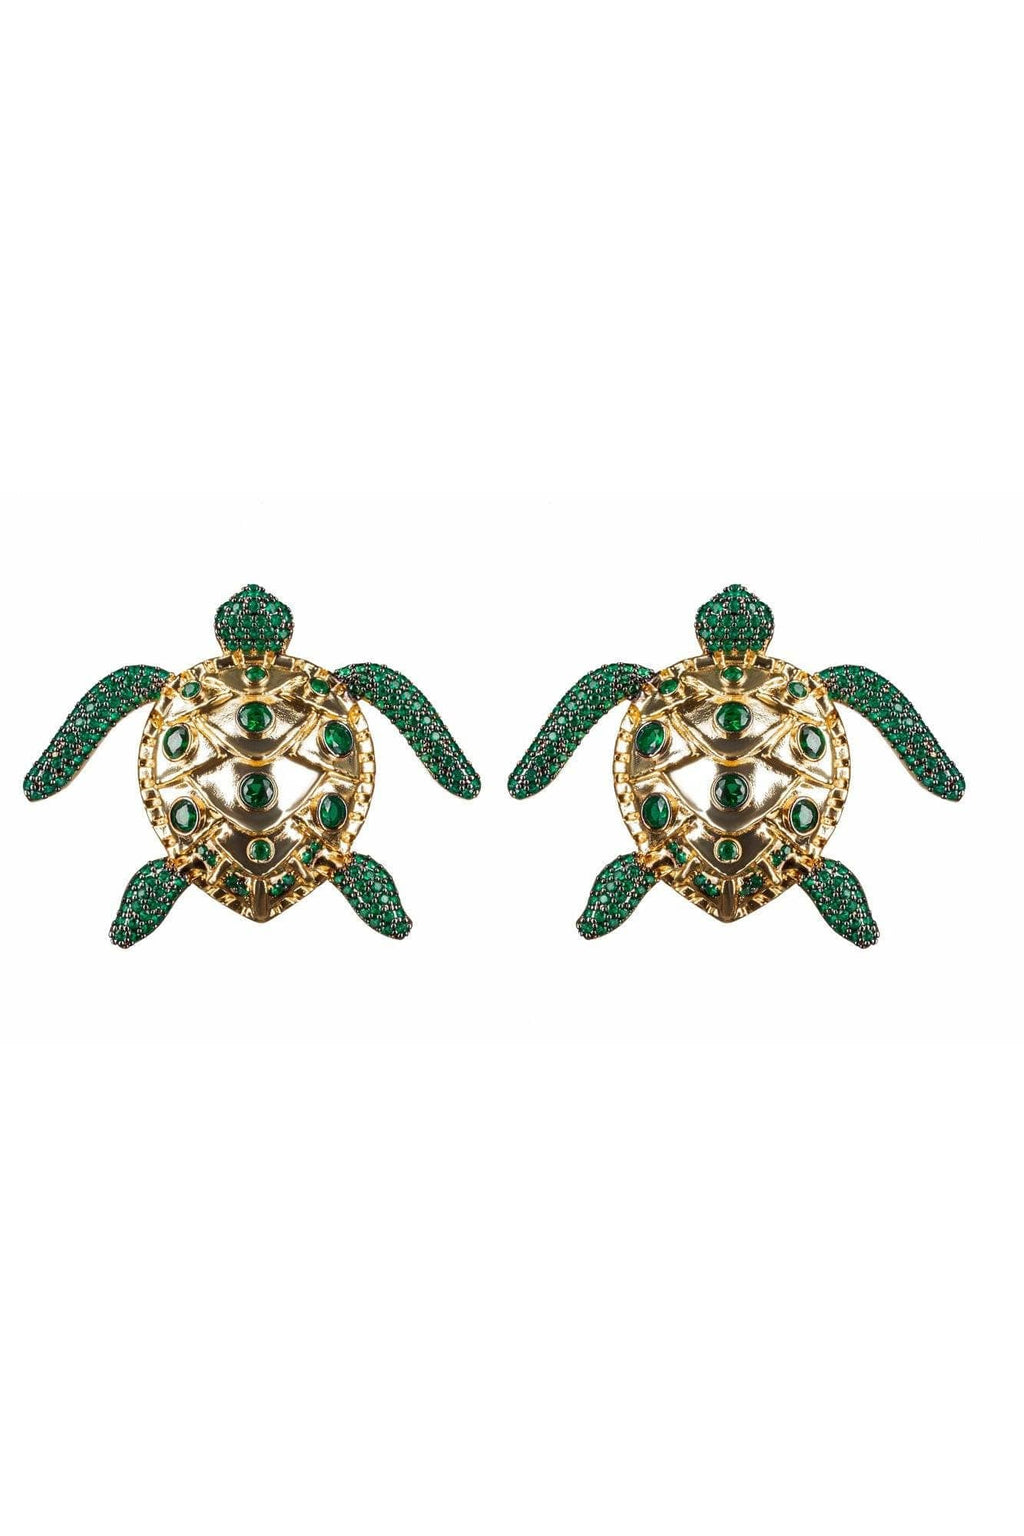 Sea Turtle Emerald Green Earrings - BYTRIBUTE